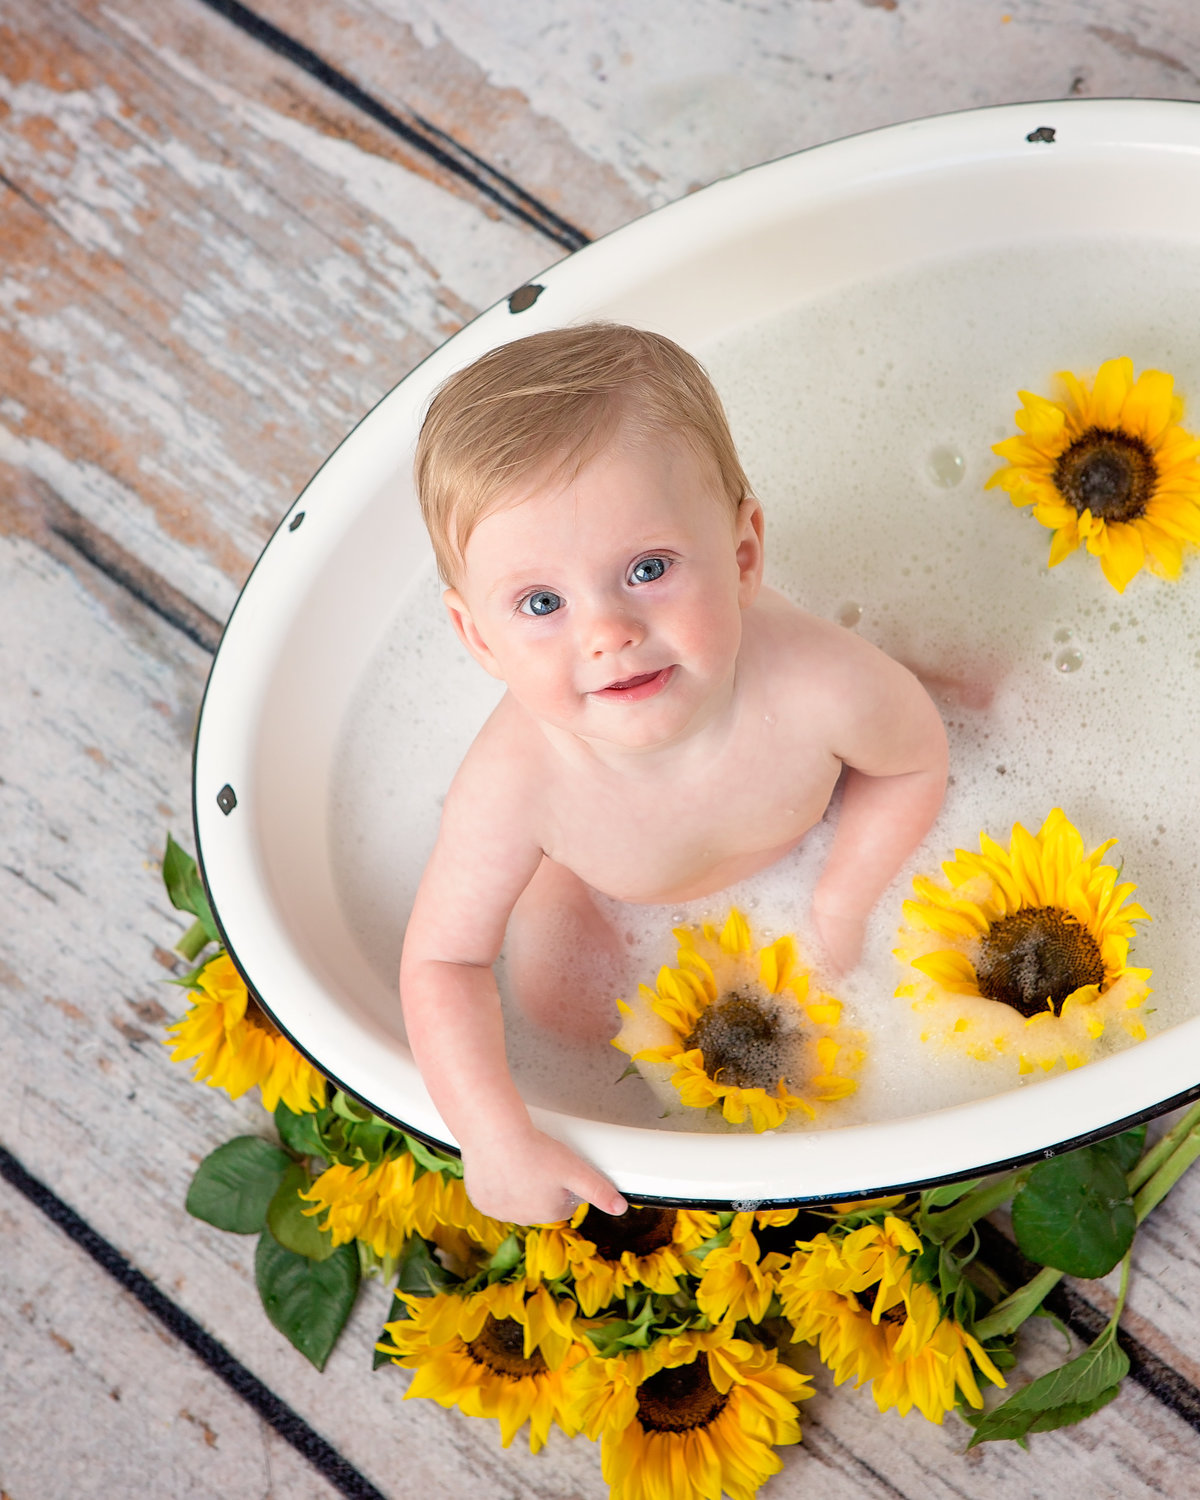 blue-eyed-baby-sitting-in-antique-bubble-bath-sunflowers-5F0A4766